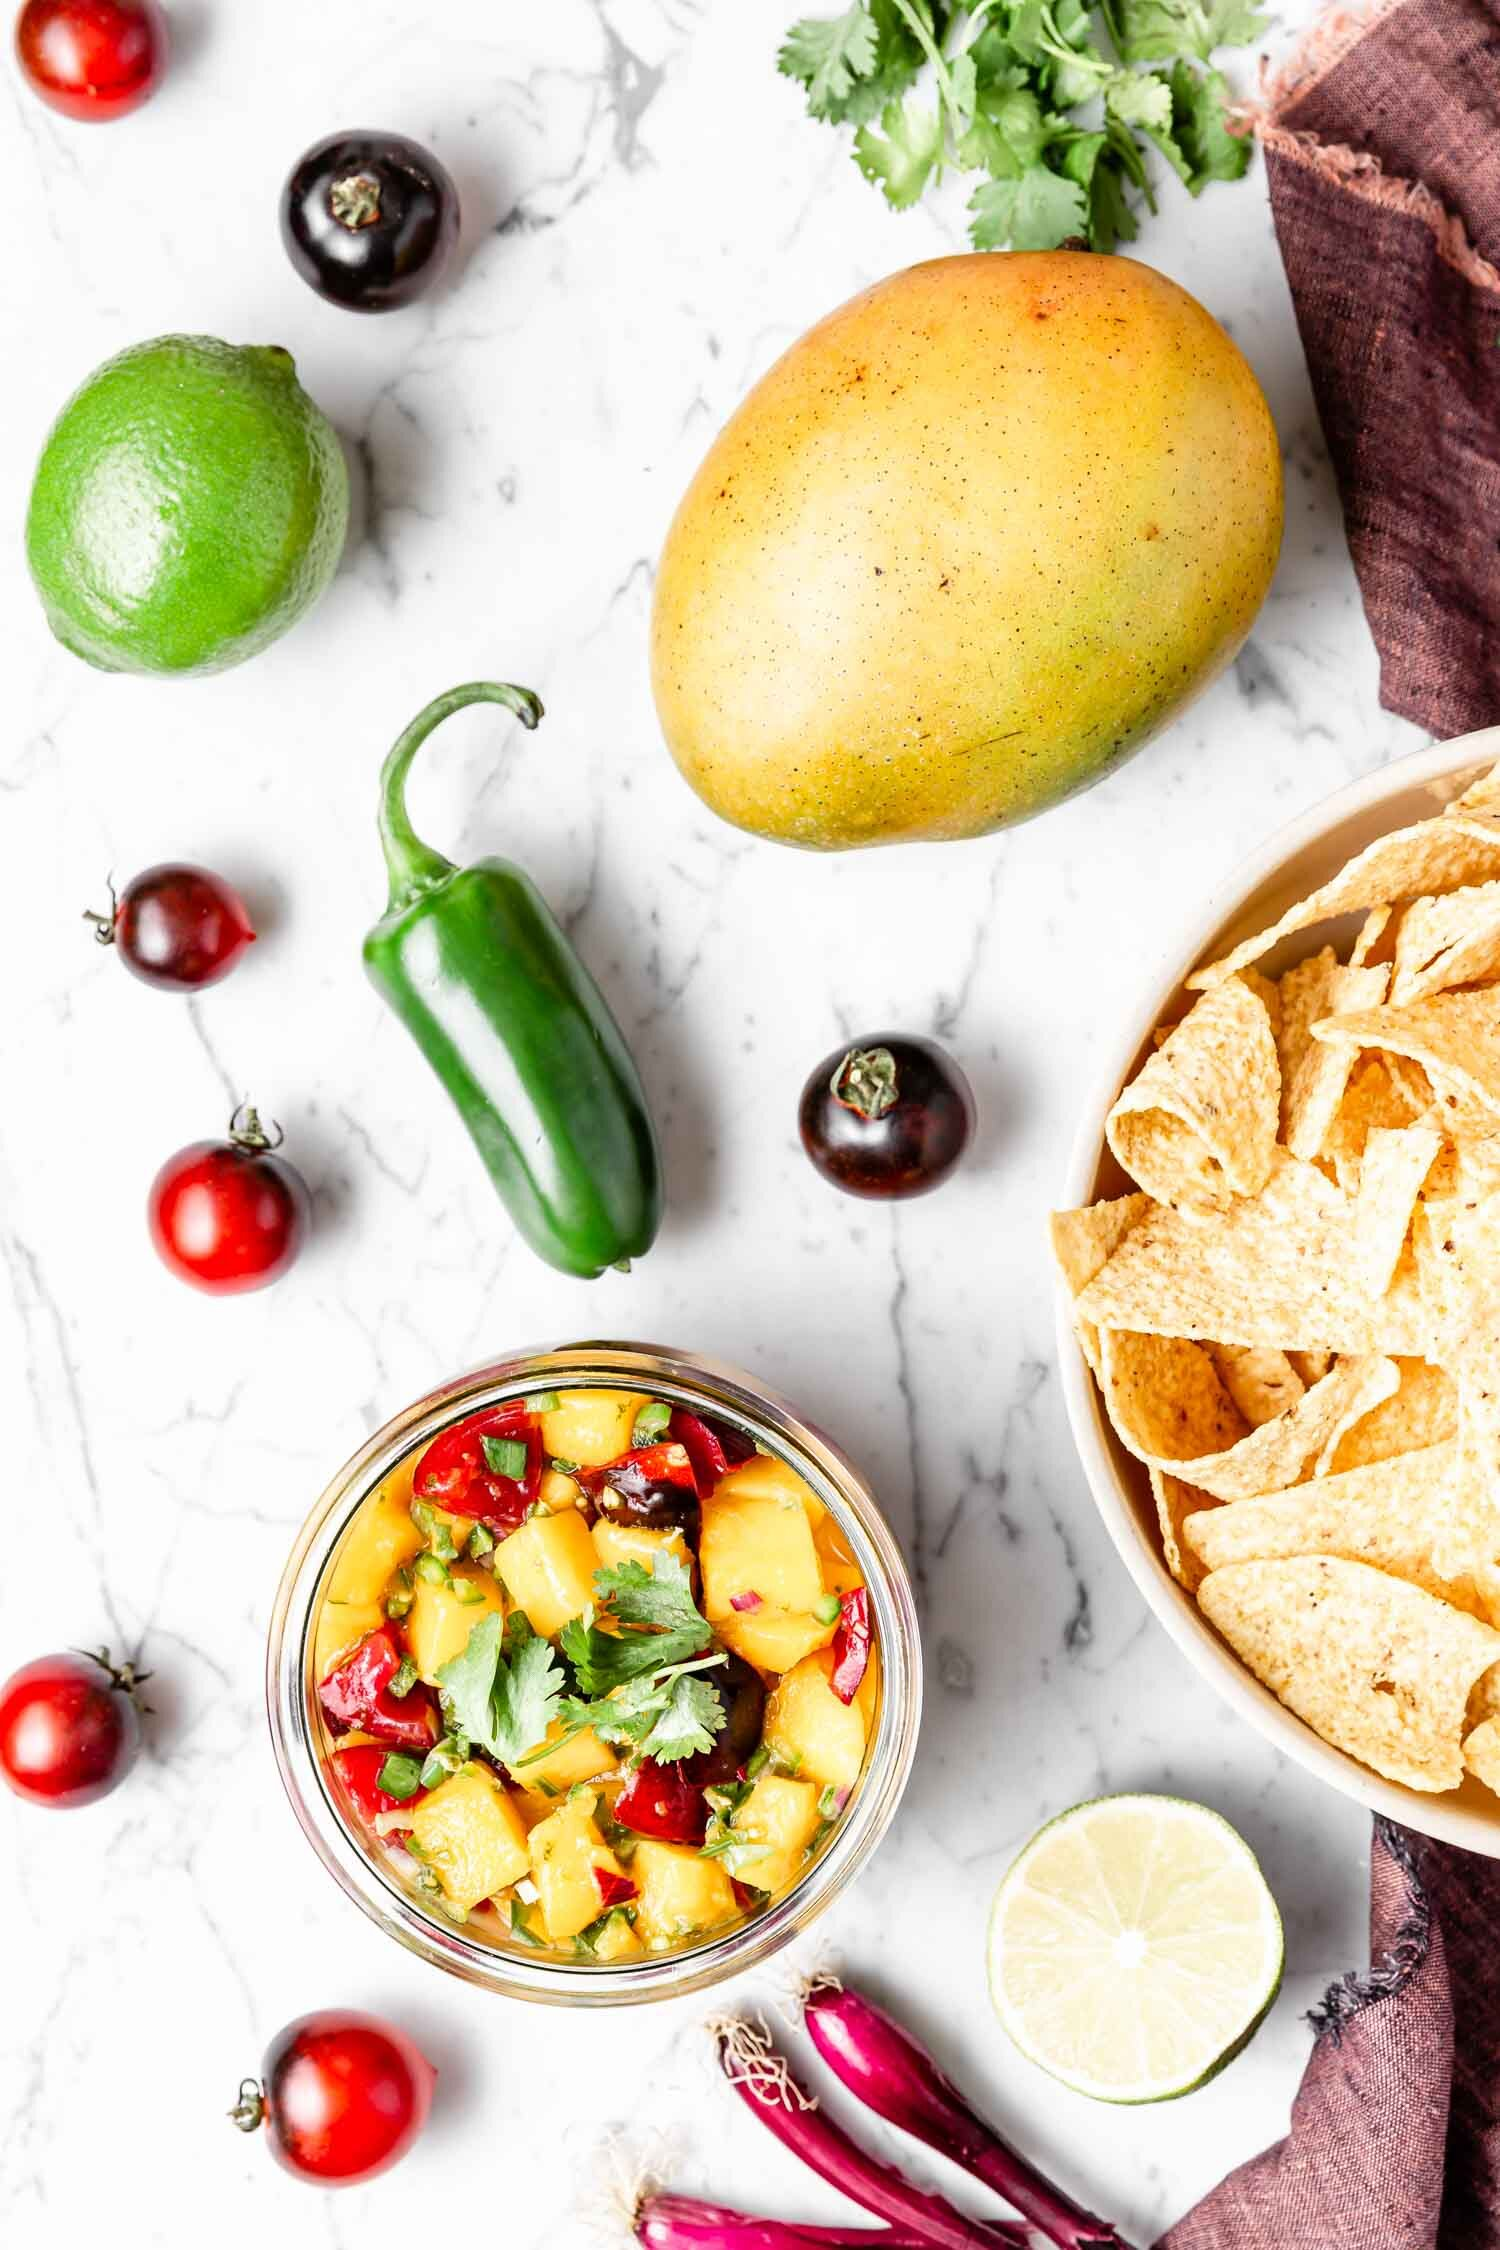 5-ingredient Mango Salsa that is fresh, vibrant, and full of flavor - plus, it's ready in just a few minutes! Sure to disappear quickly, so make a big batch! Recipe by Kari of Beautiful Ingredient.  #mangosalsa #mangorecipe #mangosalsarecipe #vegan #plantbased #salsarecipe #oilfree #glutenfree #sugarfree #easyrecipe #quickandeasyrecipes #quickeasymeals #veganmexicanfood